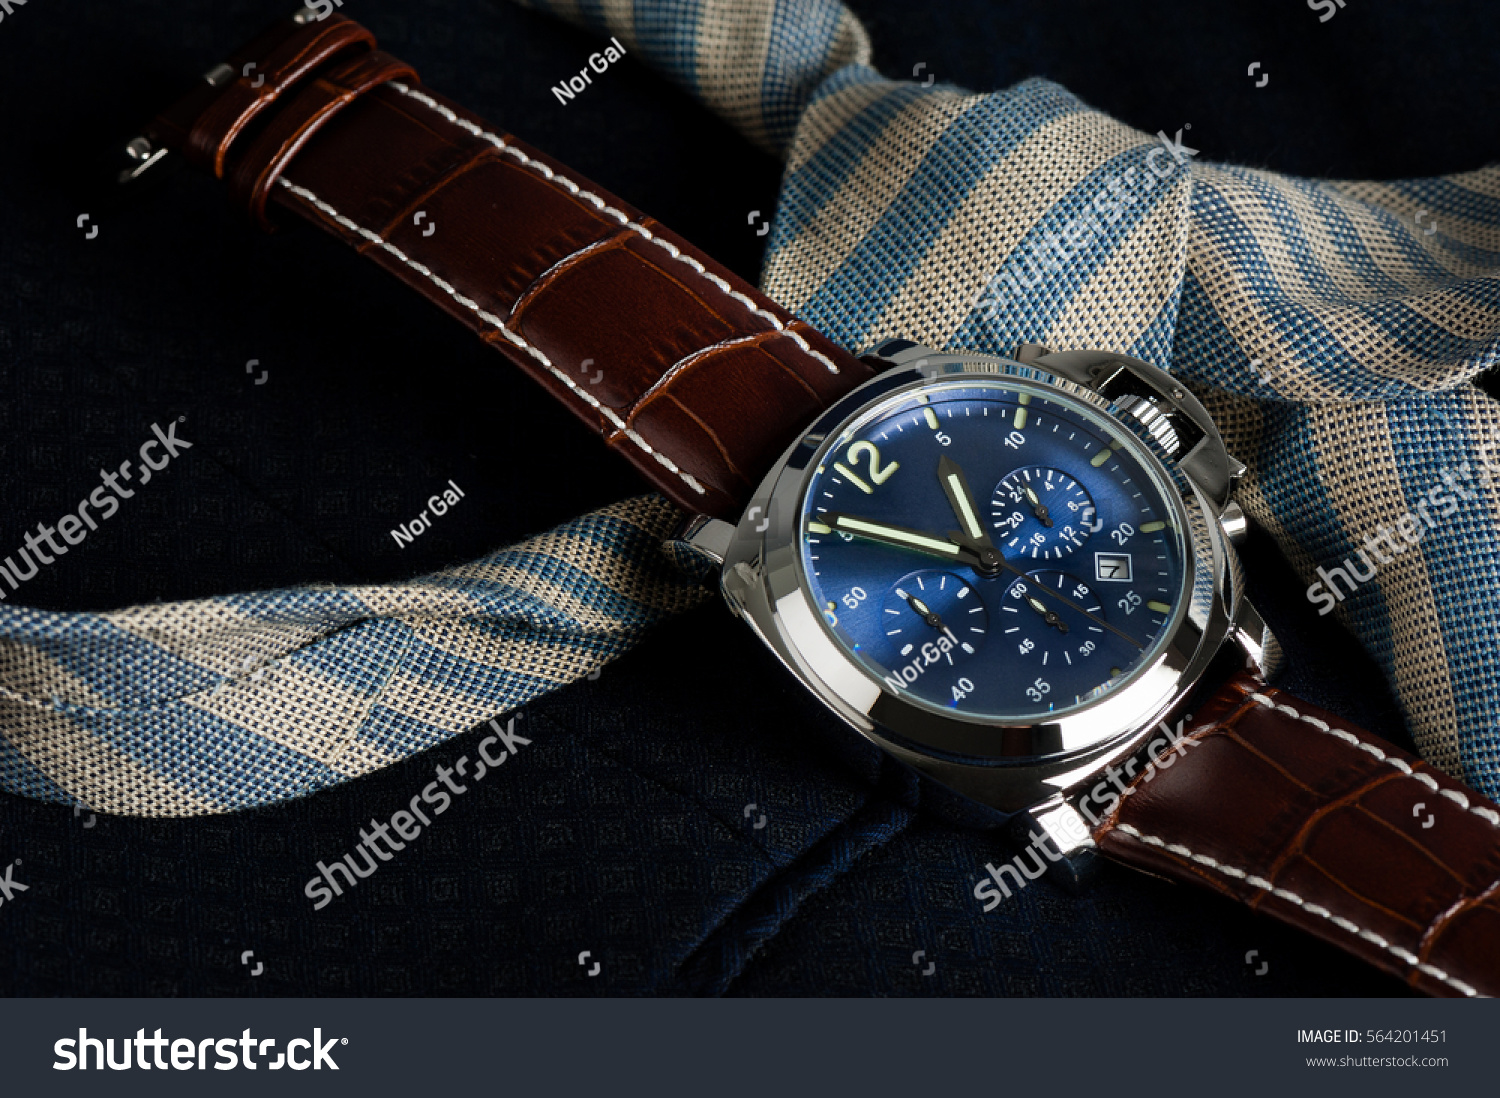 clasp buy montredo breitling strap crocodile chronograph navitimer en watches blue leather folding